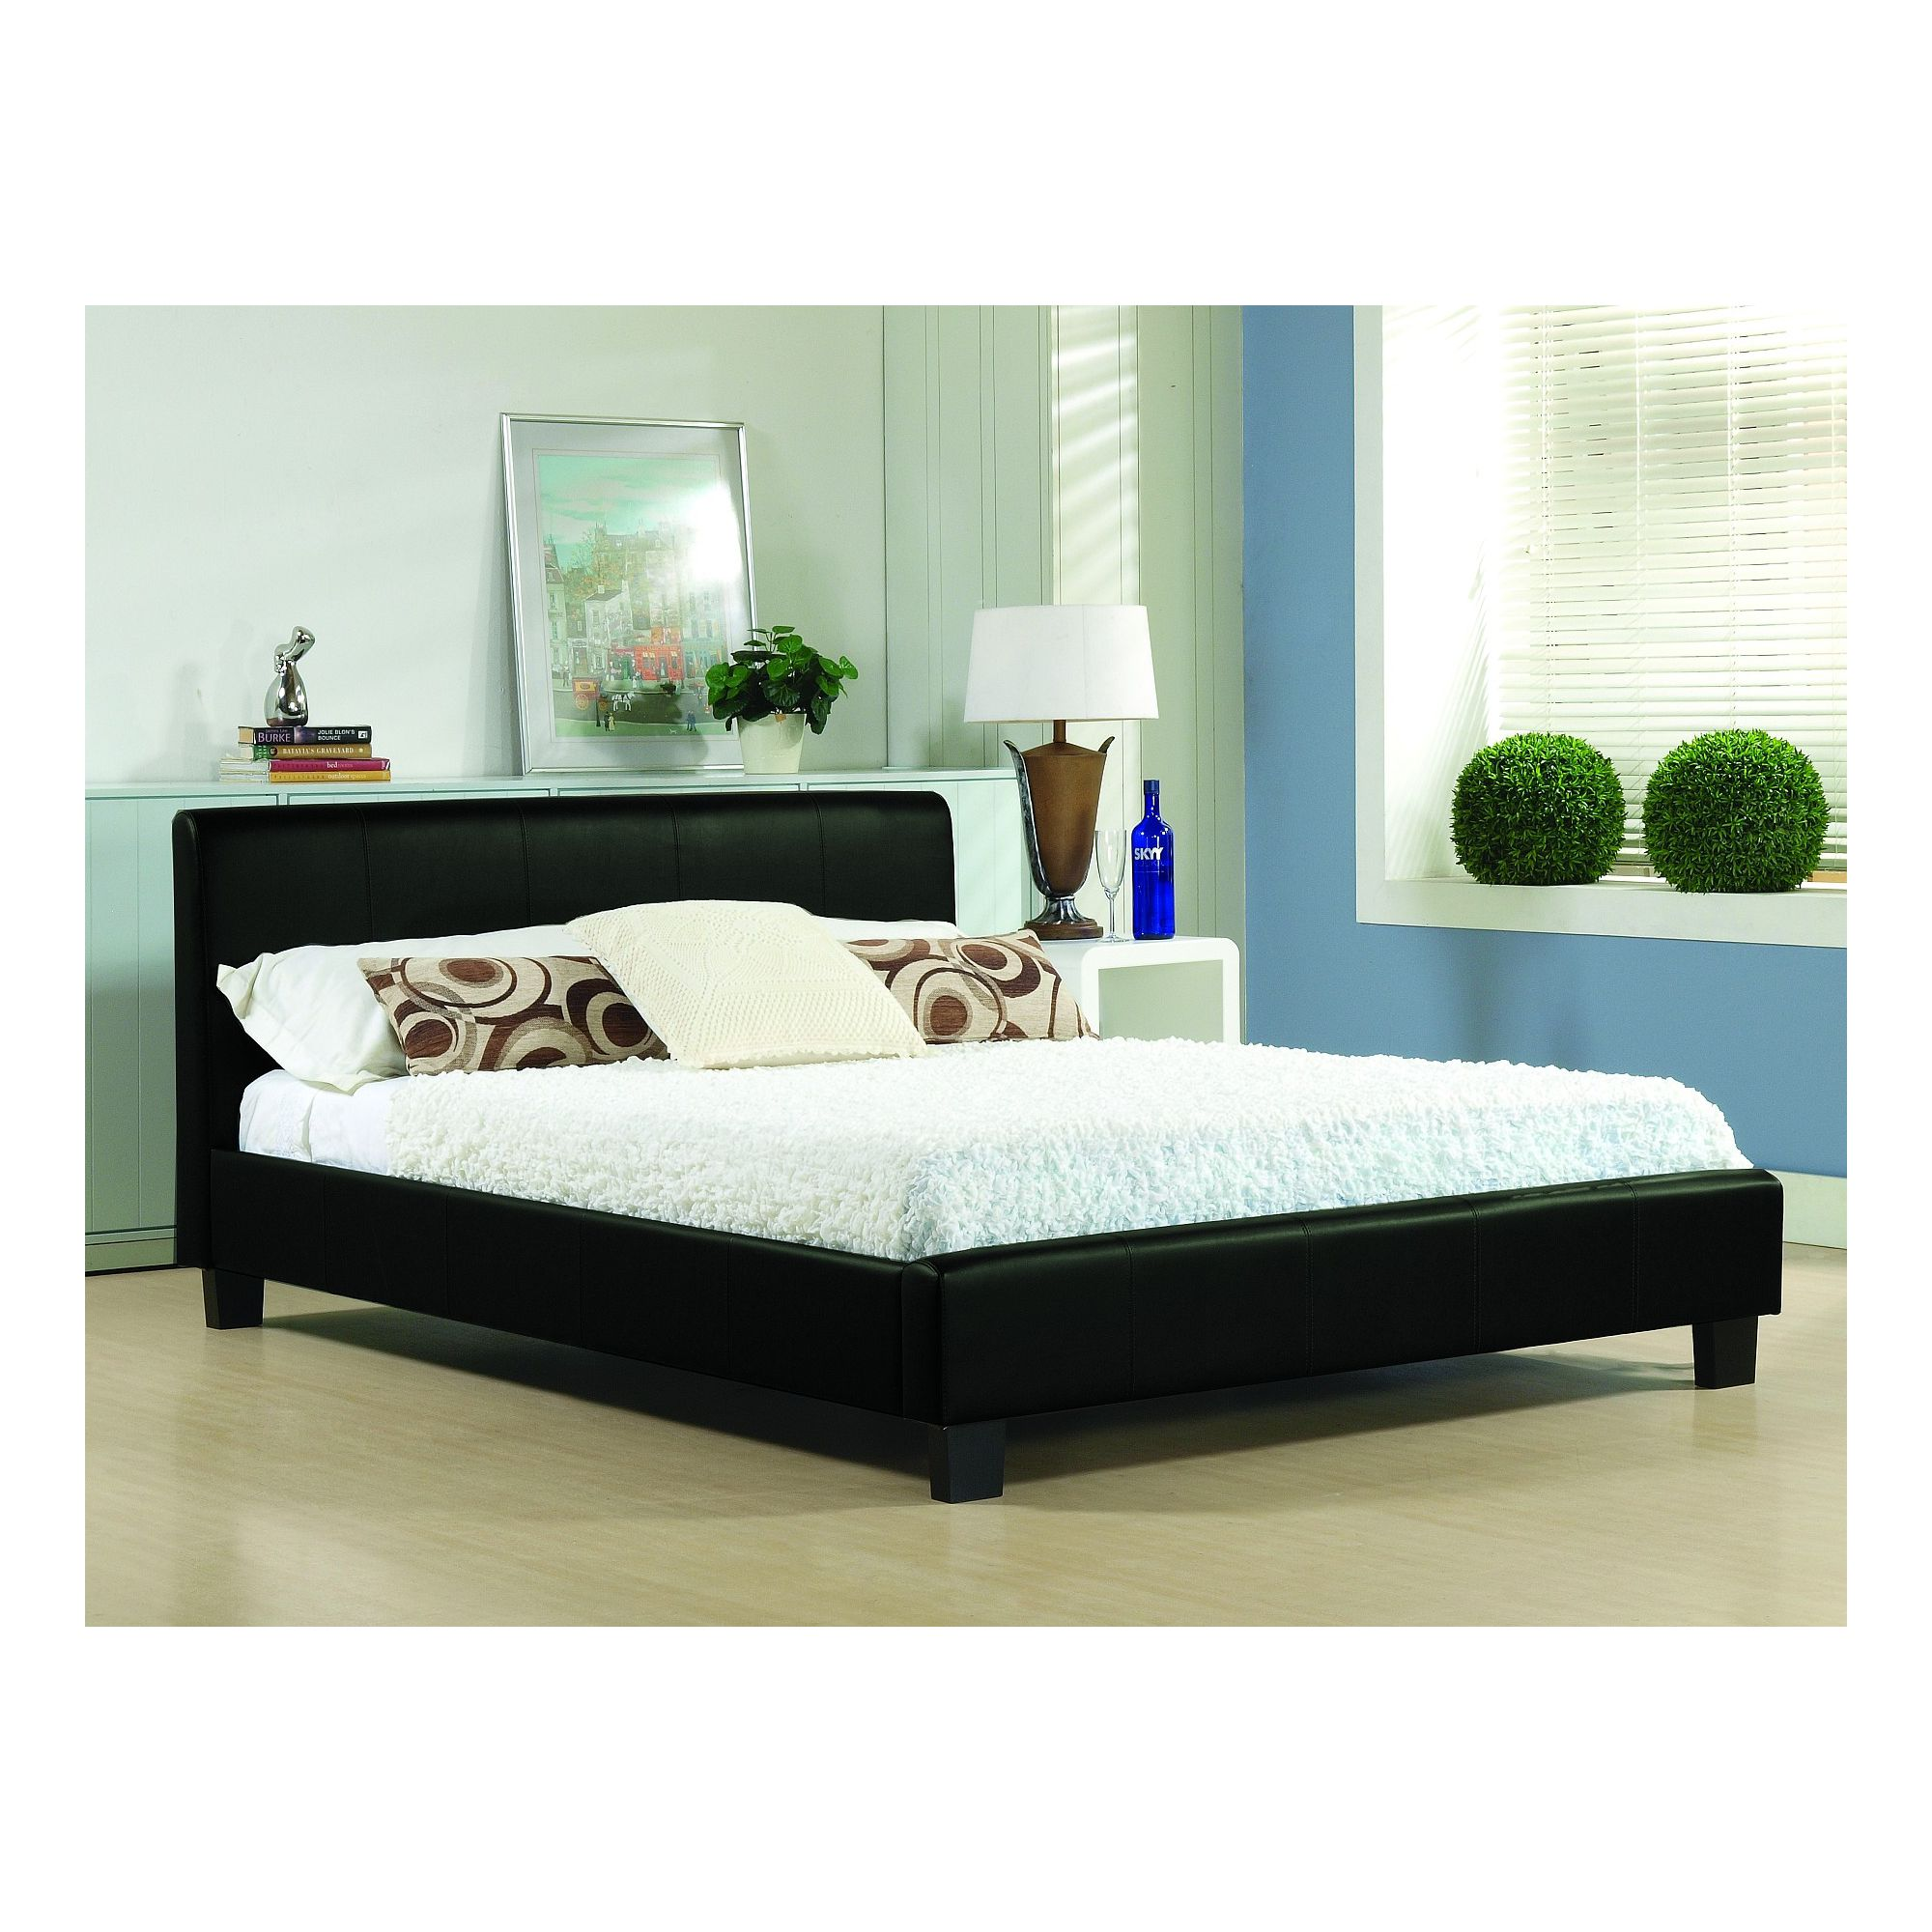 Altruna Hamburg Real Leather Bed Frame - King at Tesco Direct